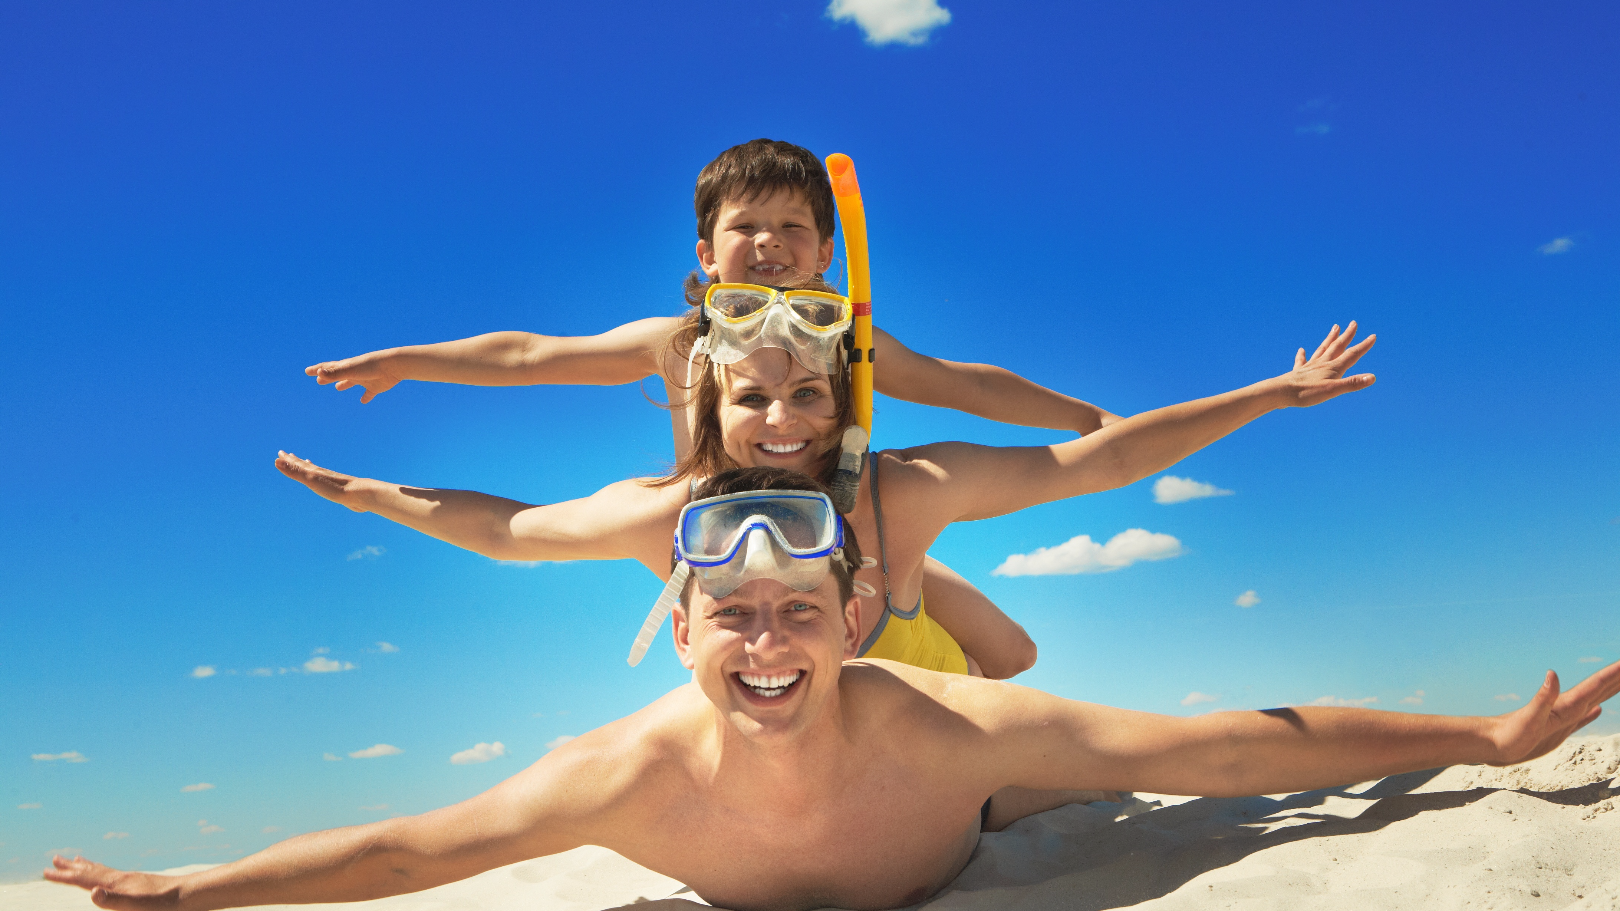 Angebot all-inclusive anfang august in Rimini